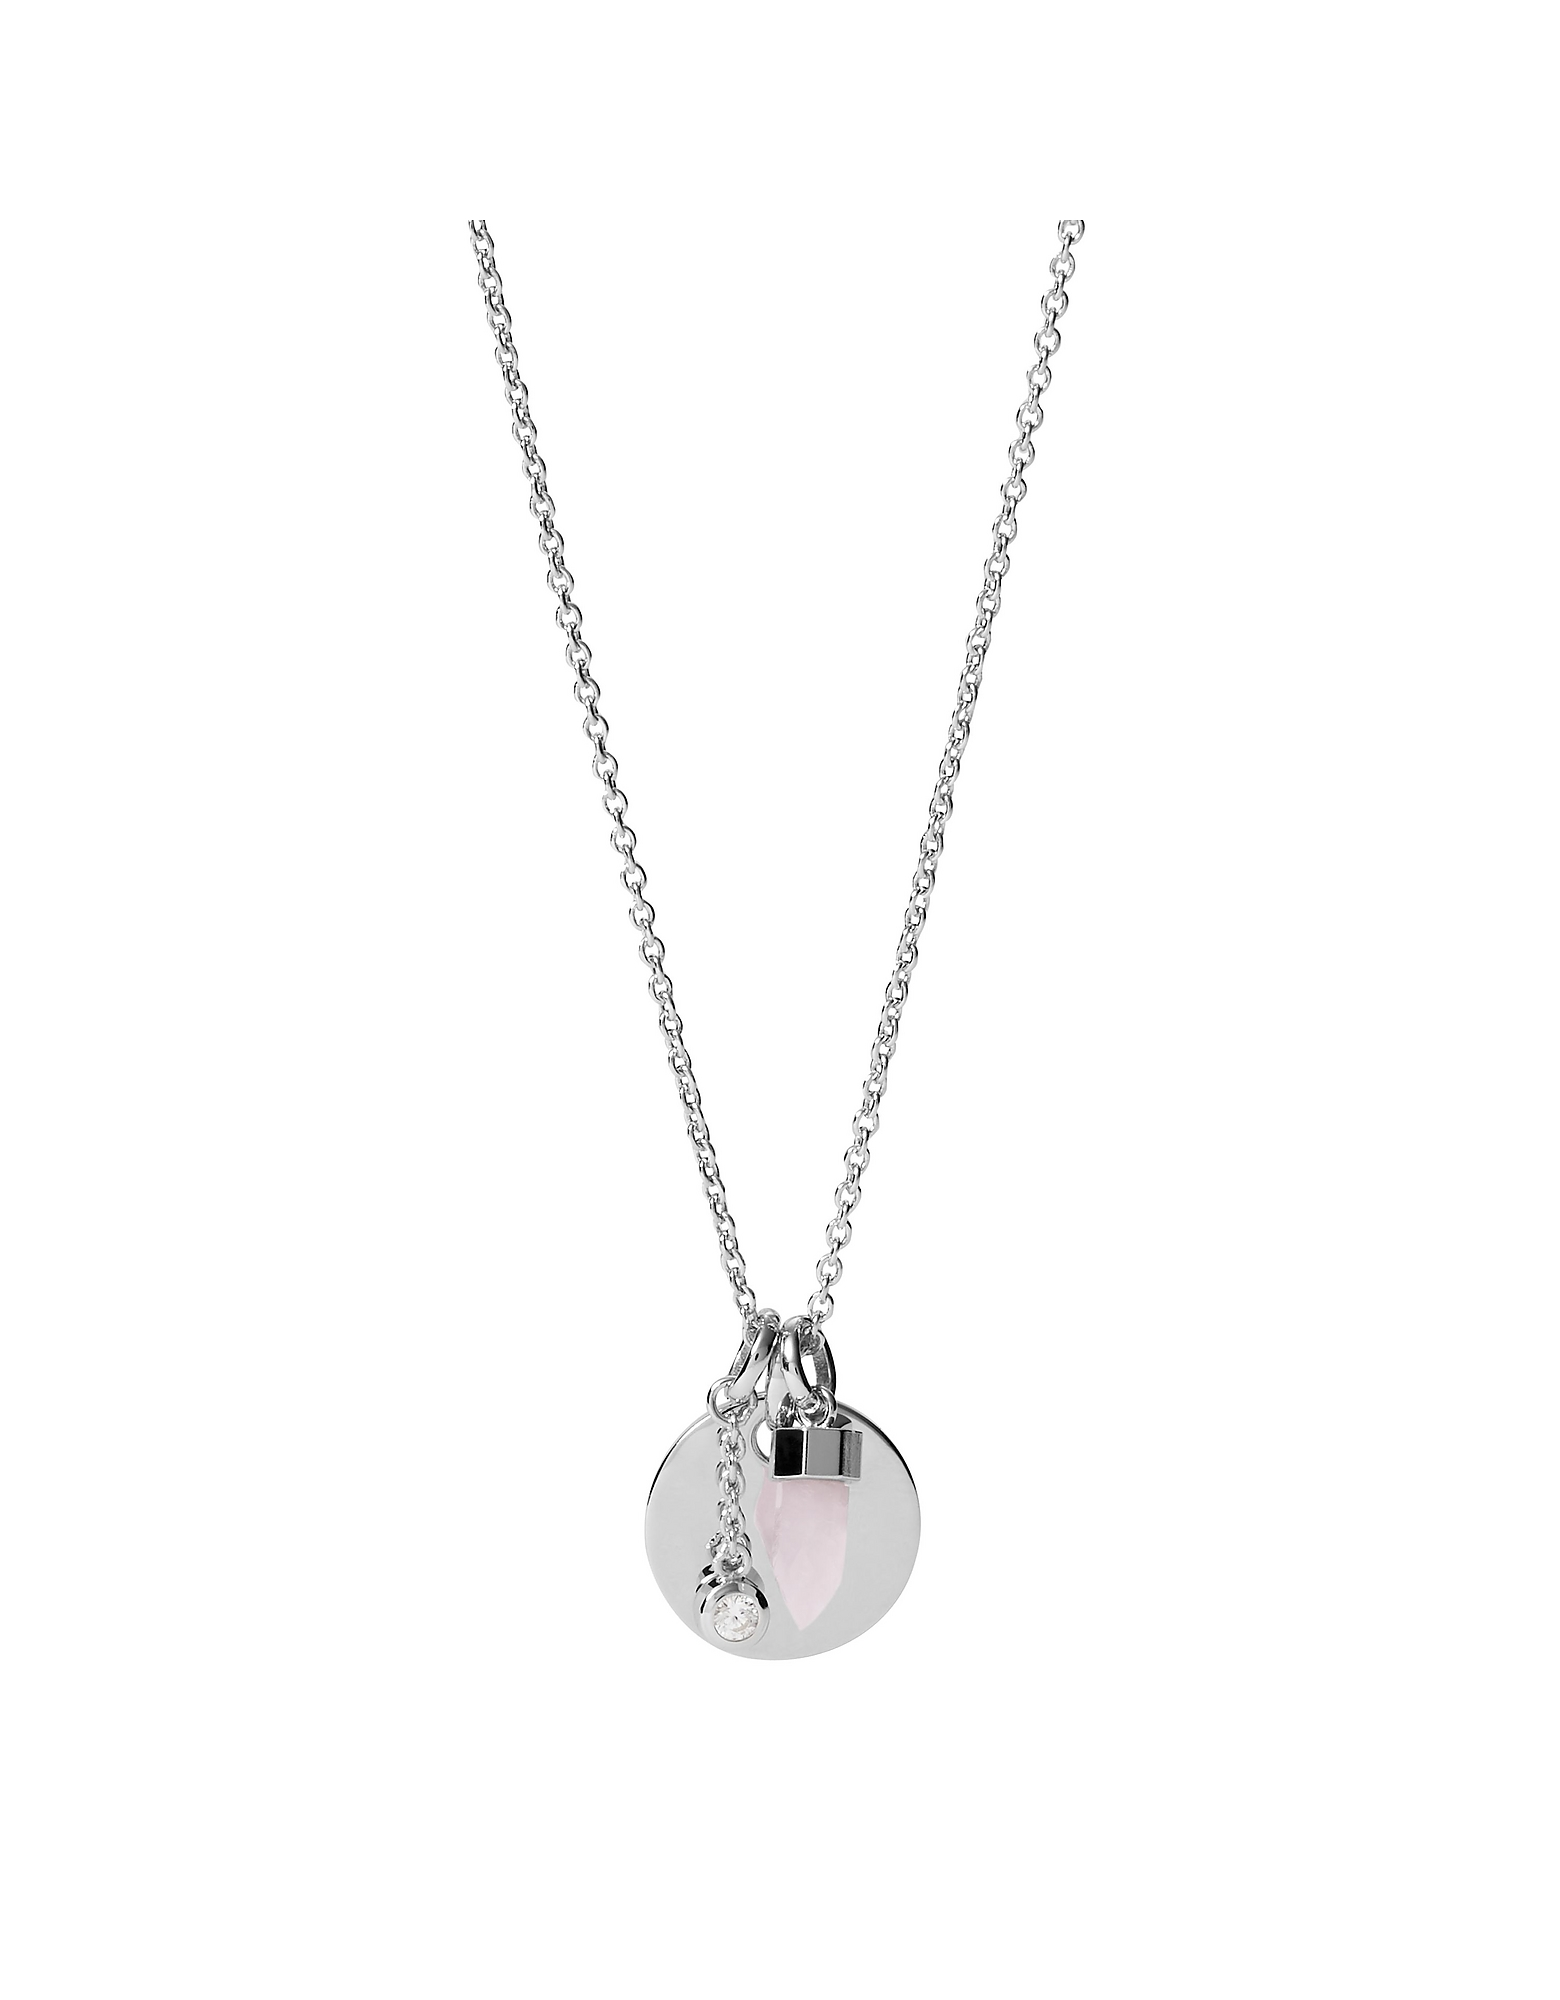 Fossil Designer Necklaces, Sterling Silver 925 Sterling Silver Women's Necklace